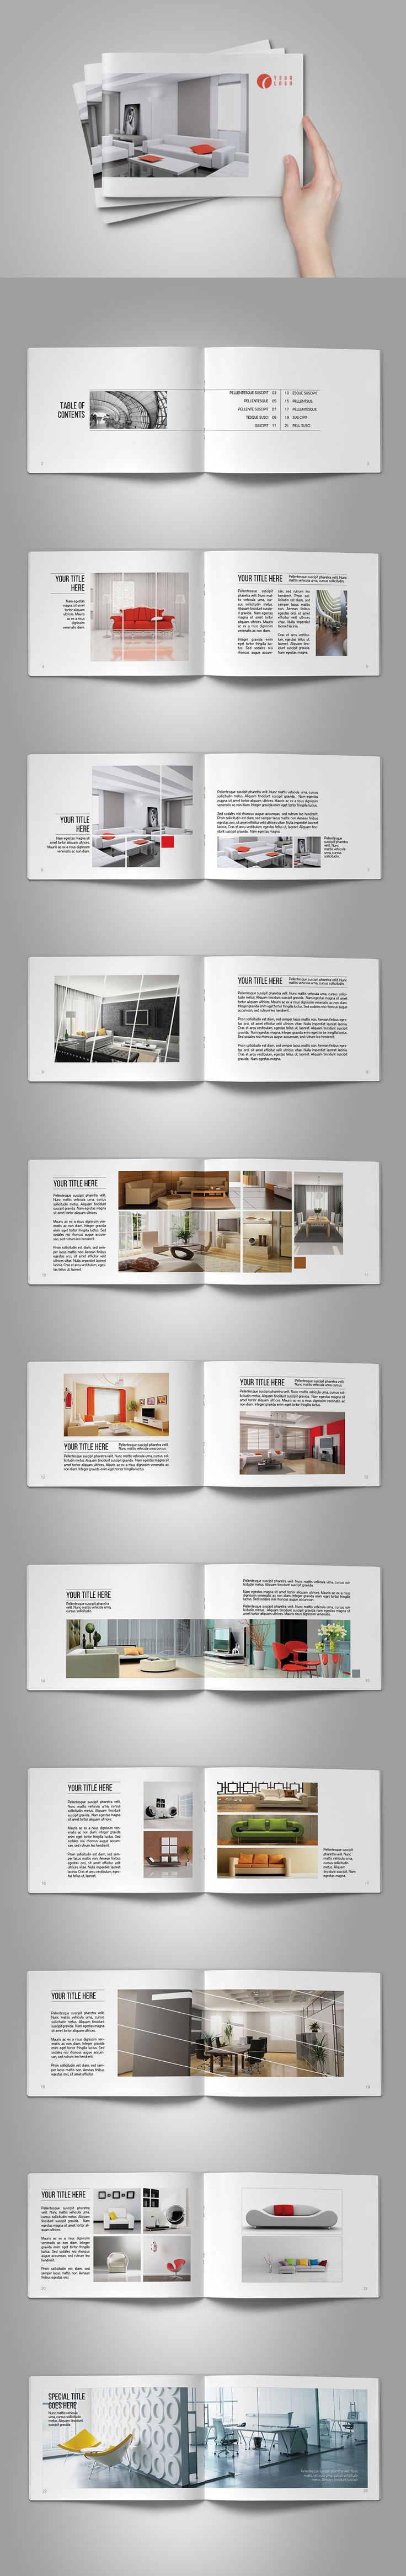 Interior Design Brochure Template InDesign INDD